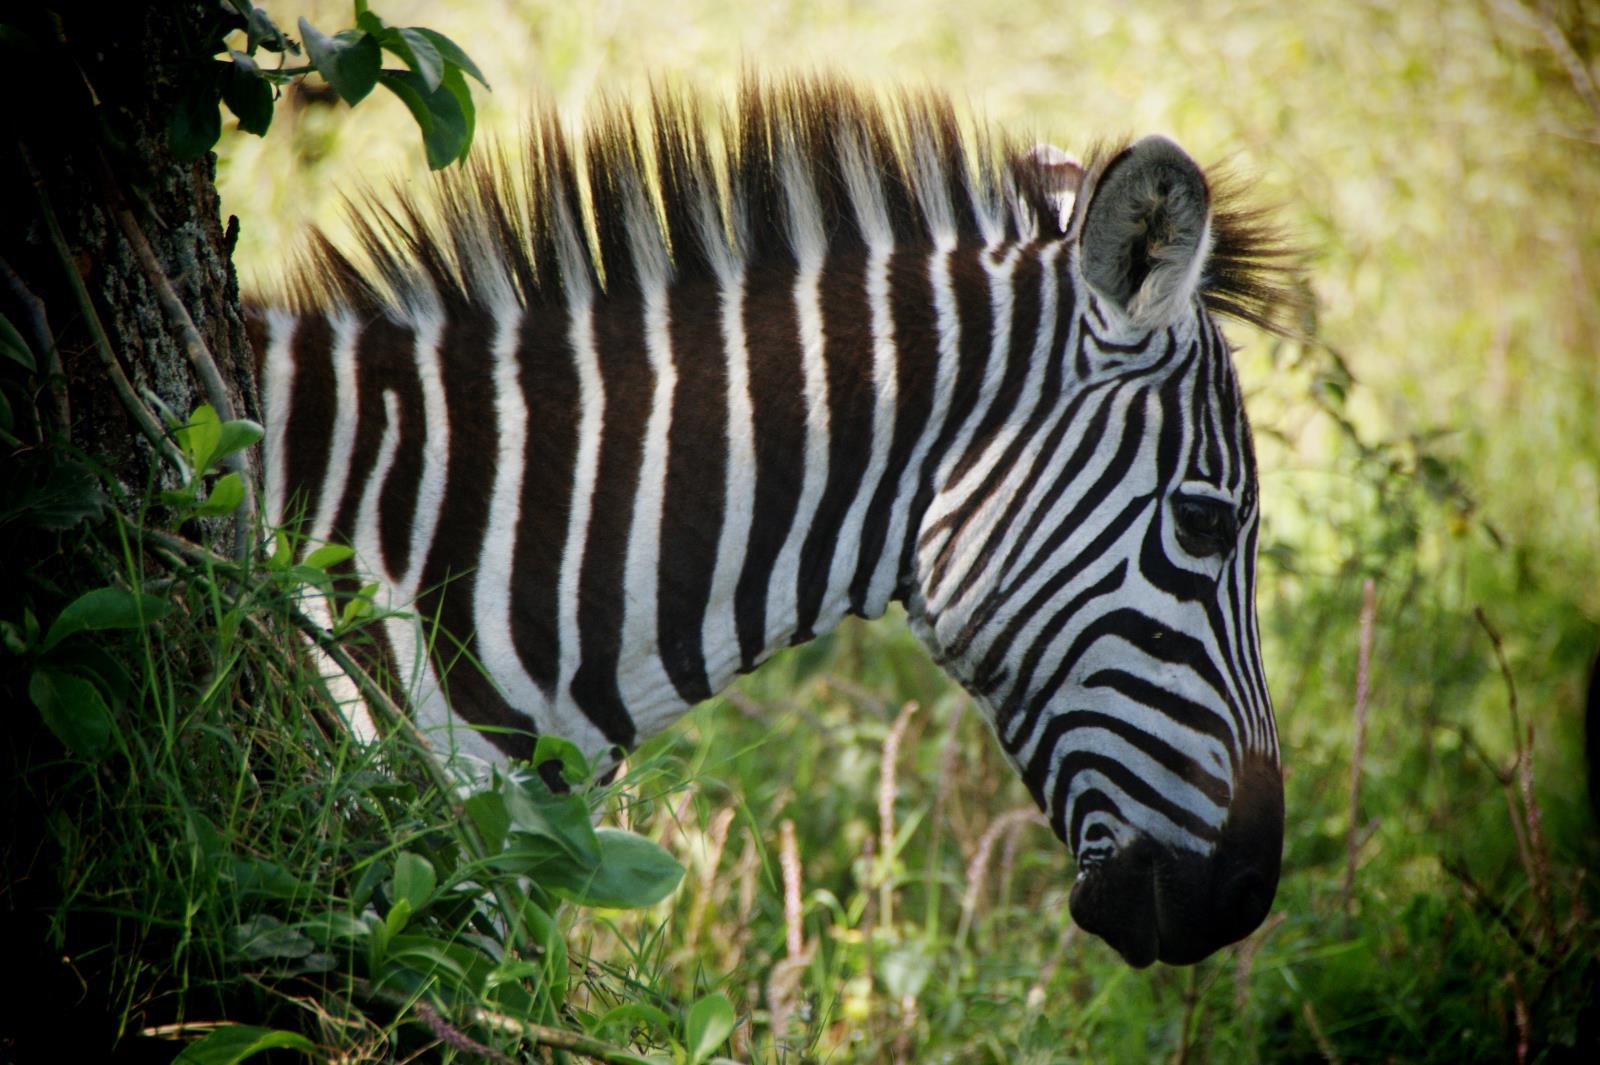 Zebra Encounter during Safari in Majete, Mozambique